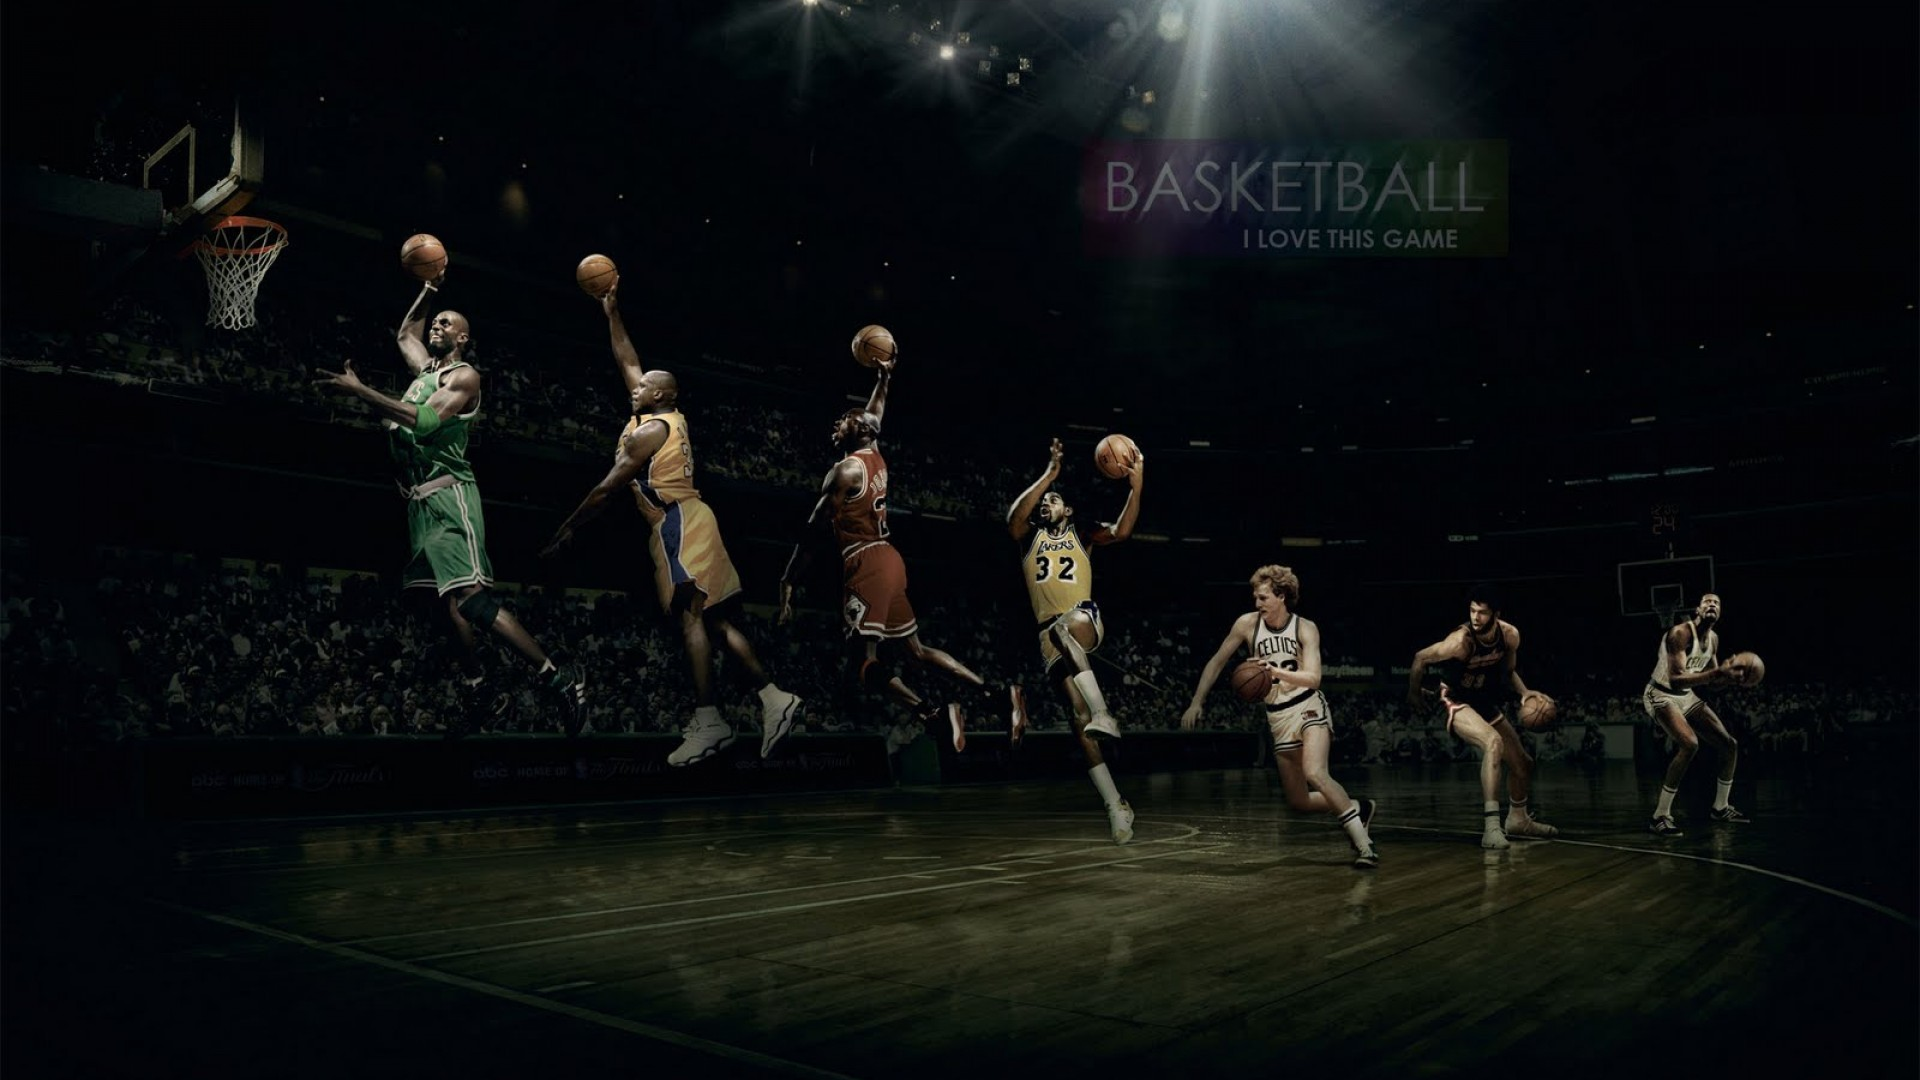 Nba Wallpapers Hd 75 Images